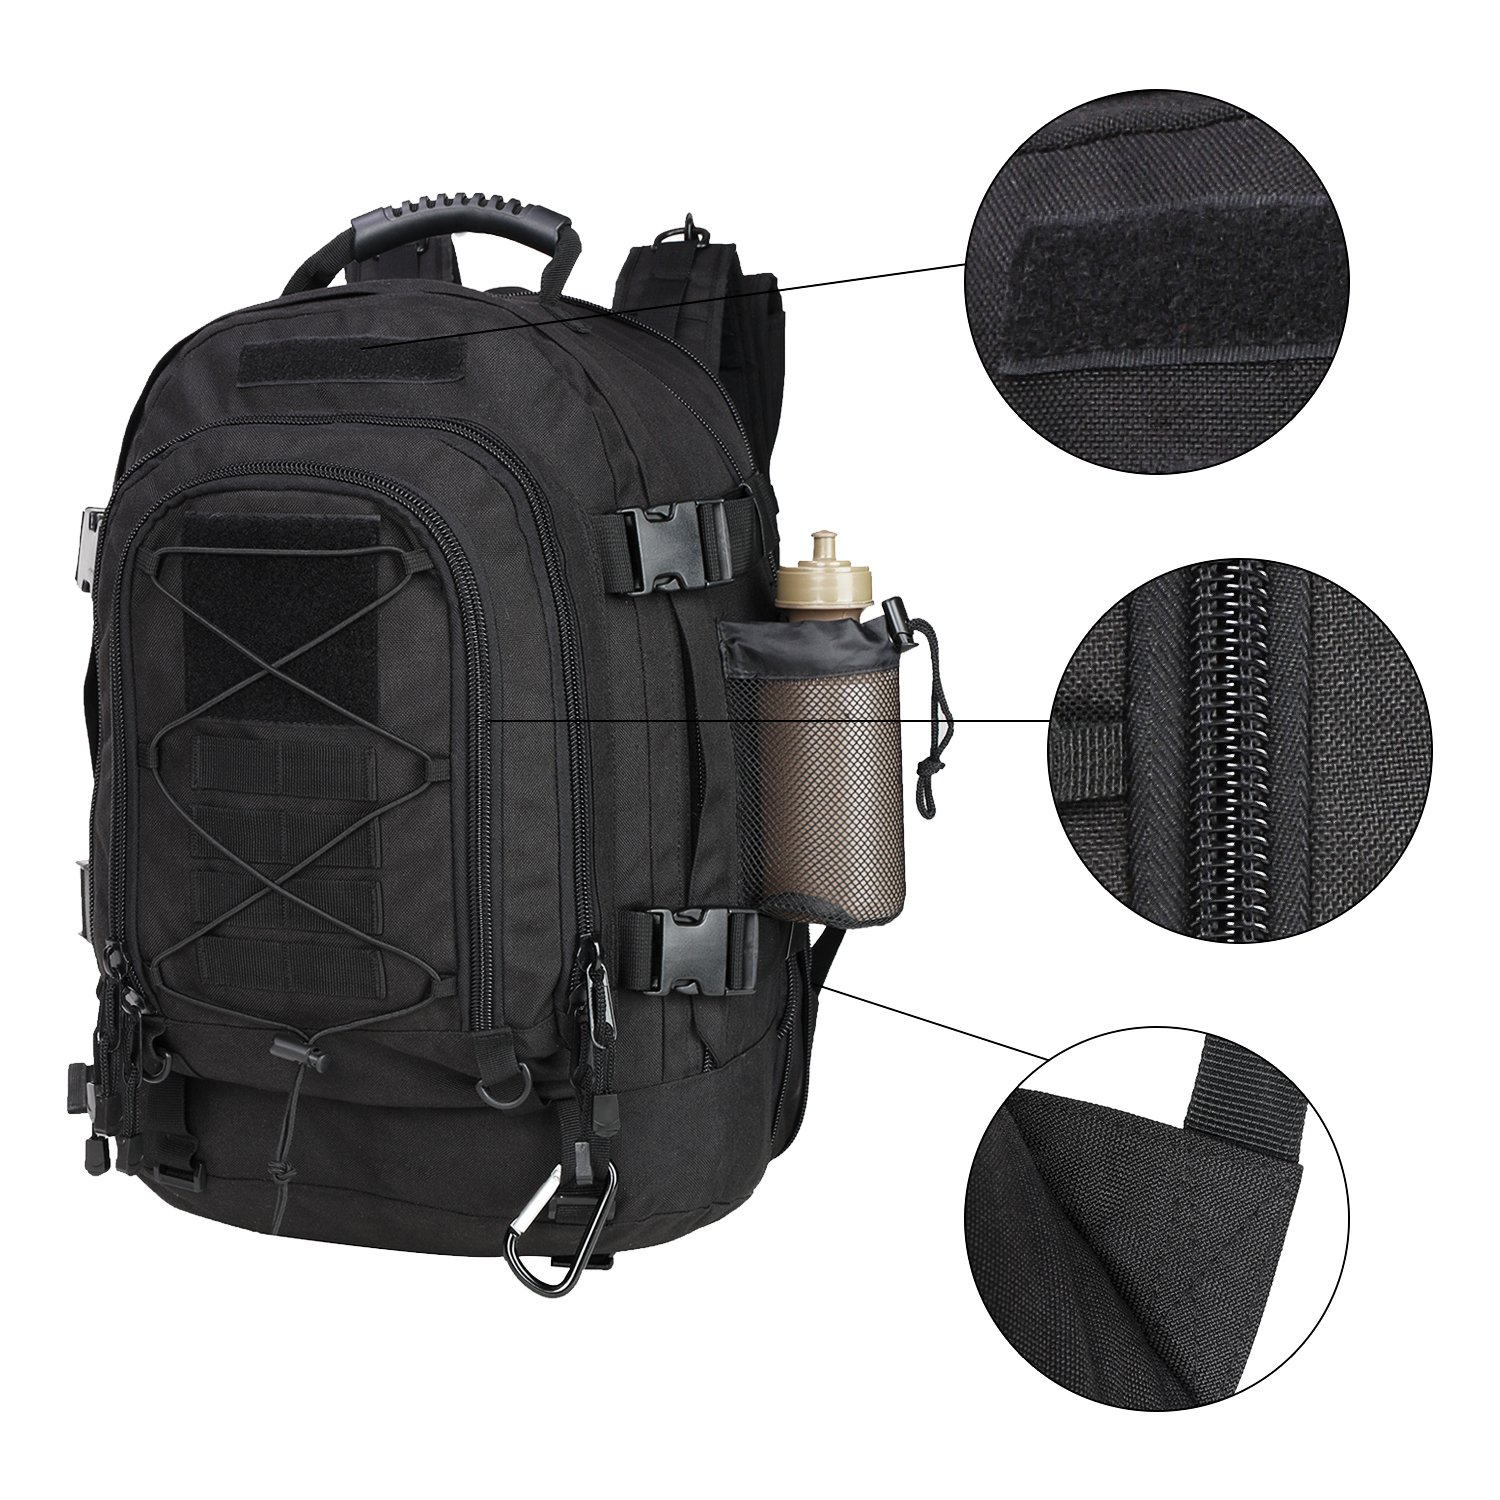 PANS Military Expandable Travel Backpack Tactical Waterproof Outdoor 3-Day Bag,Large,Molle System for School,Hiking,Camping,Trekking,Outdoor Sports,Work Molle System for Travel Work Gray